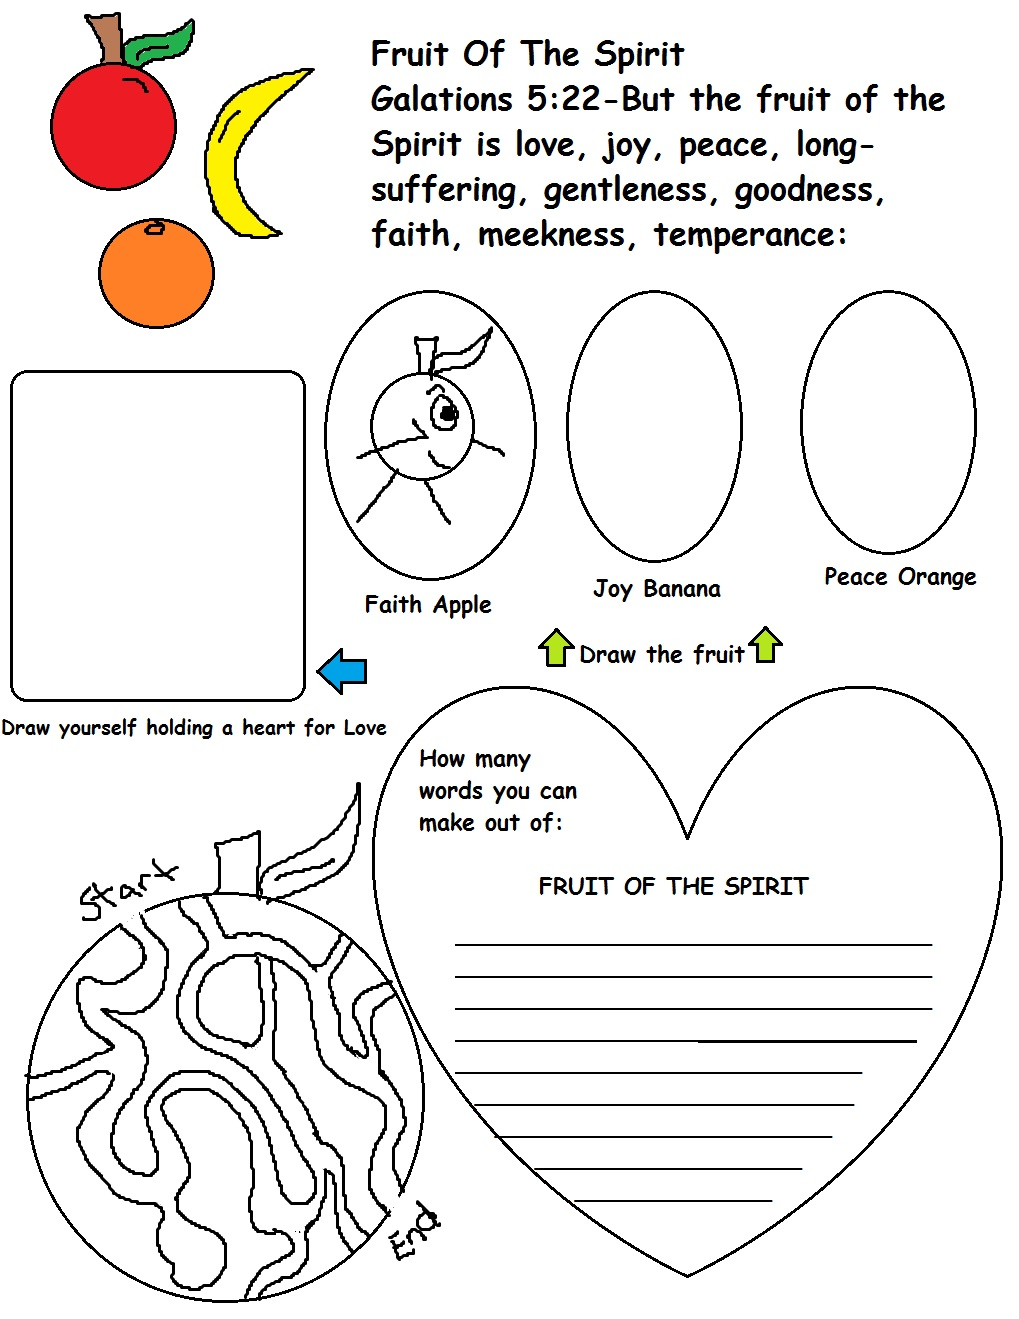 Worksheets Fruit Of The Spirit Worksheets fruit of the spirit worksheets free library download 17 images about on pinterest maze sunday